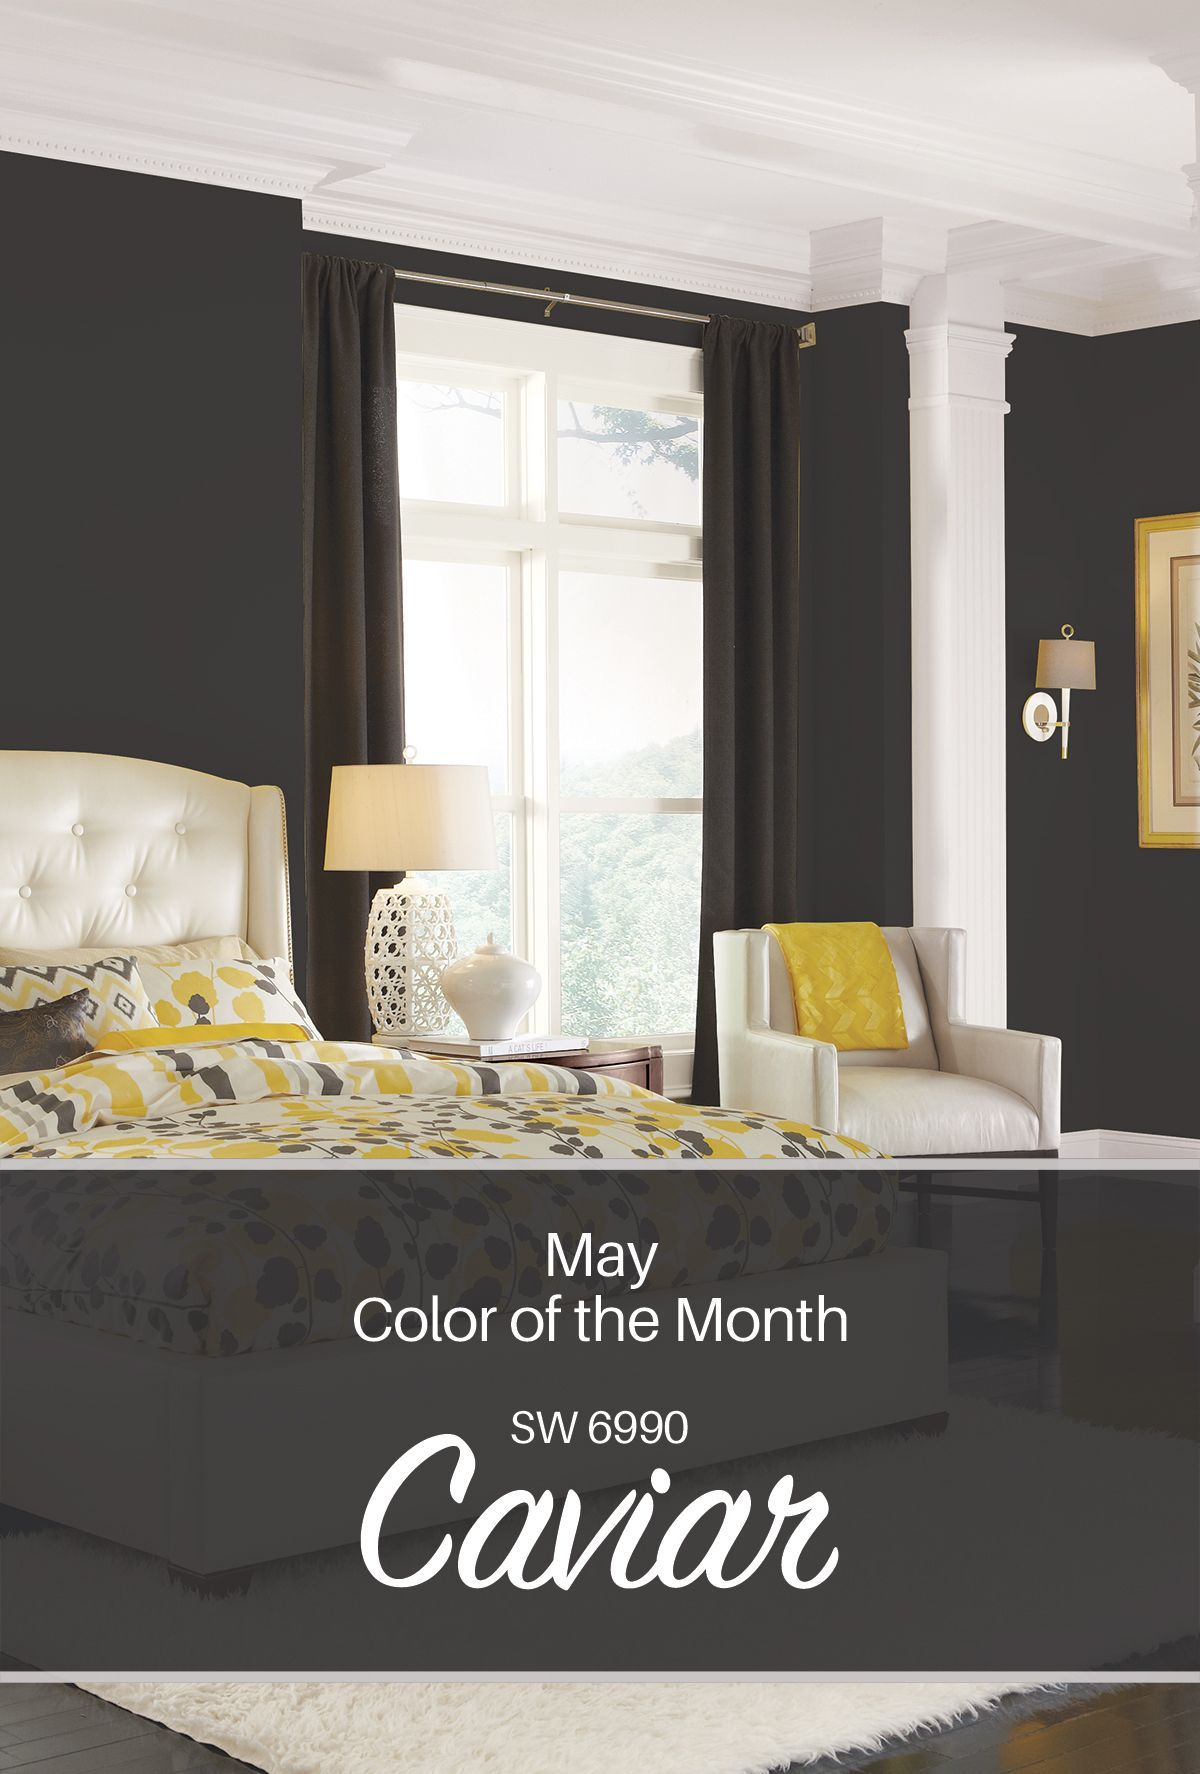 Sherwin Williams May Color Of The Month Caviar Sw 6990